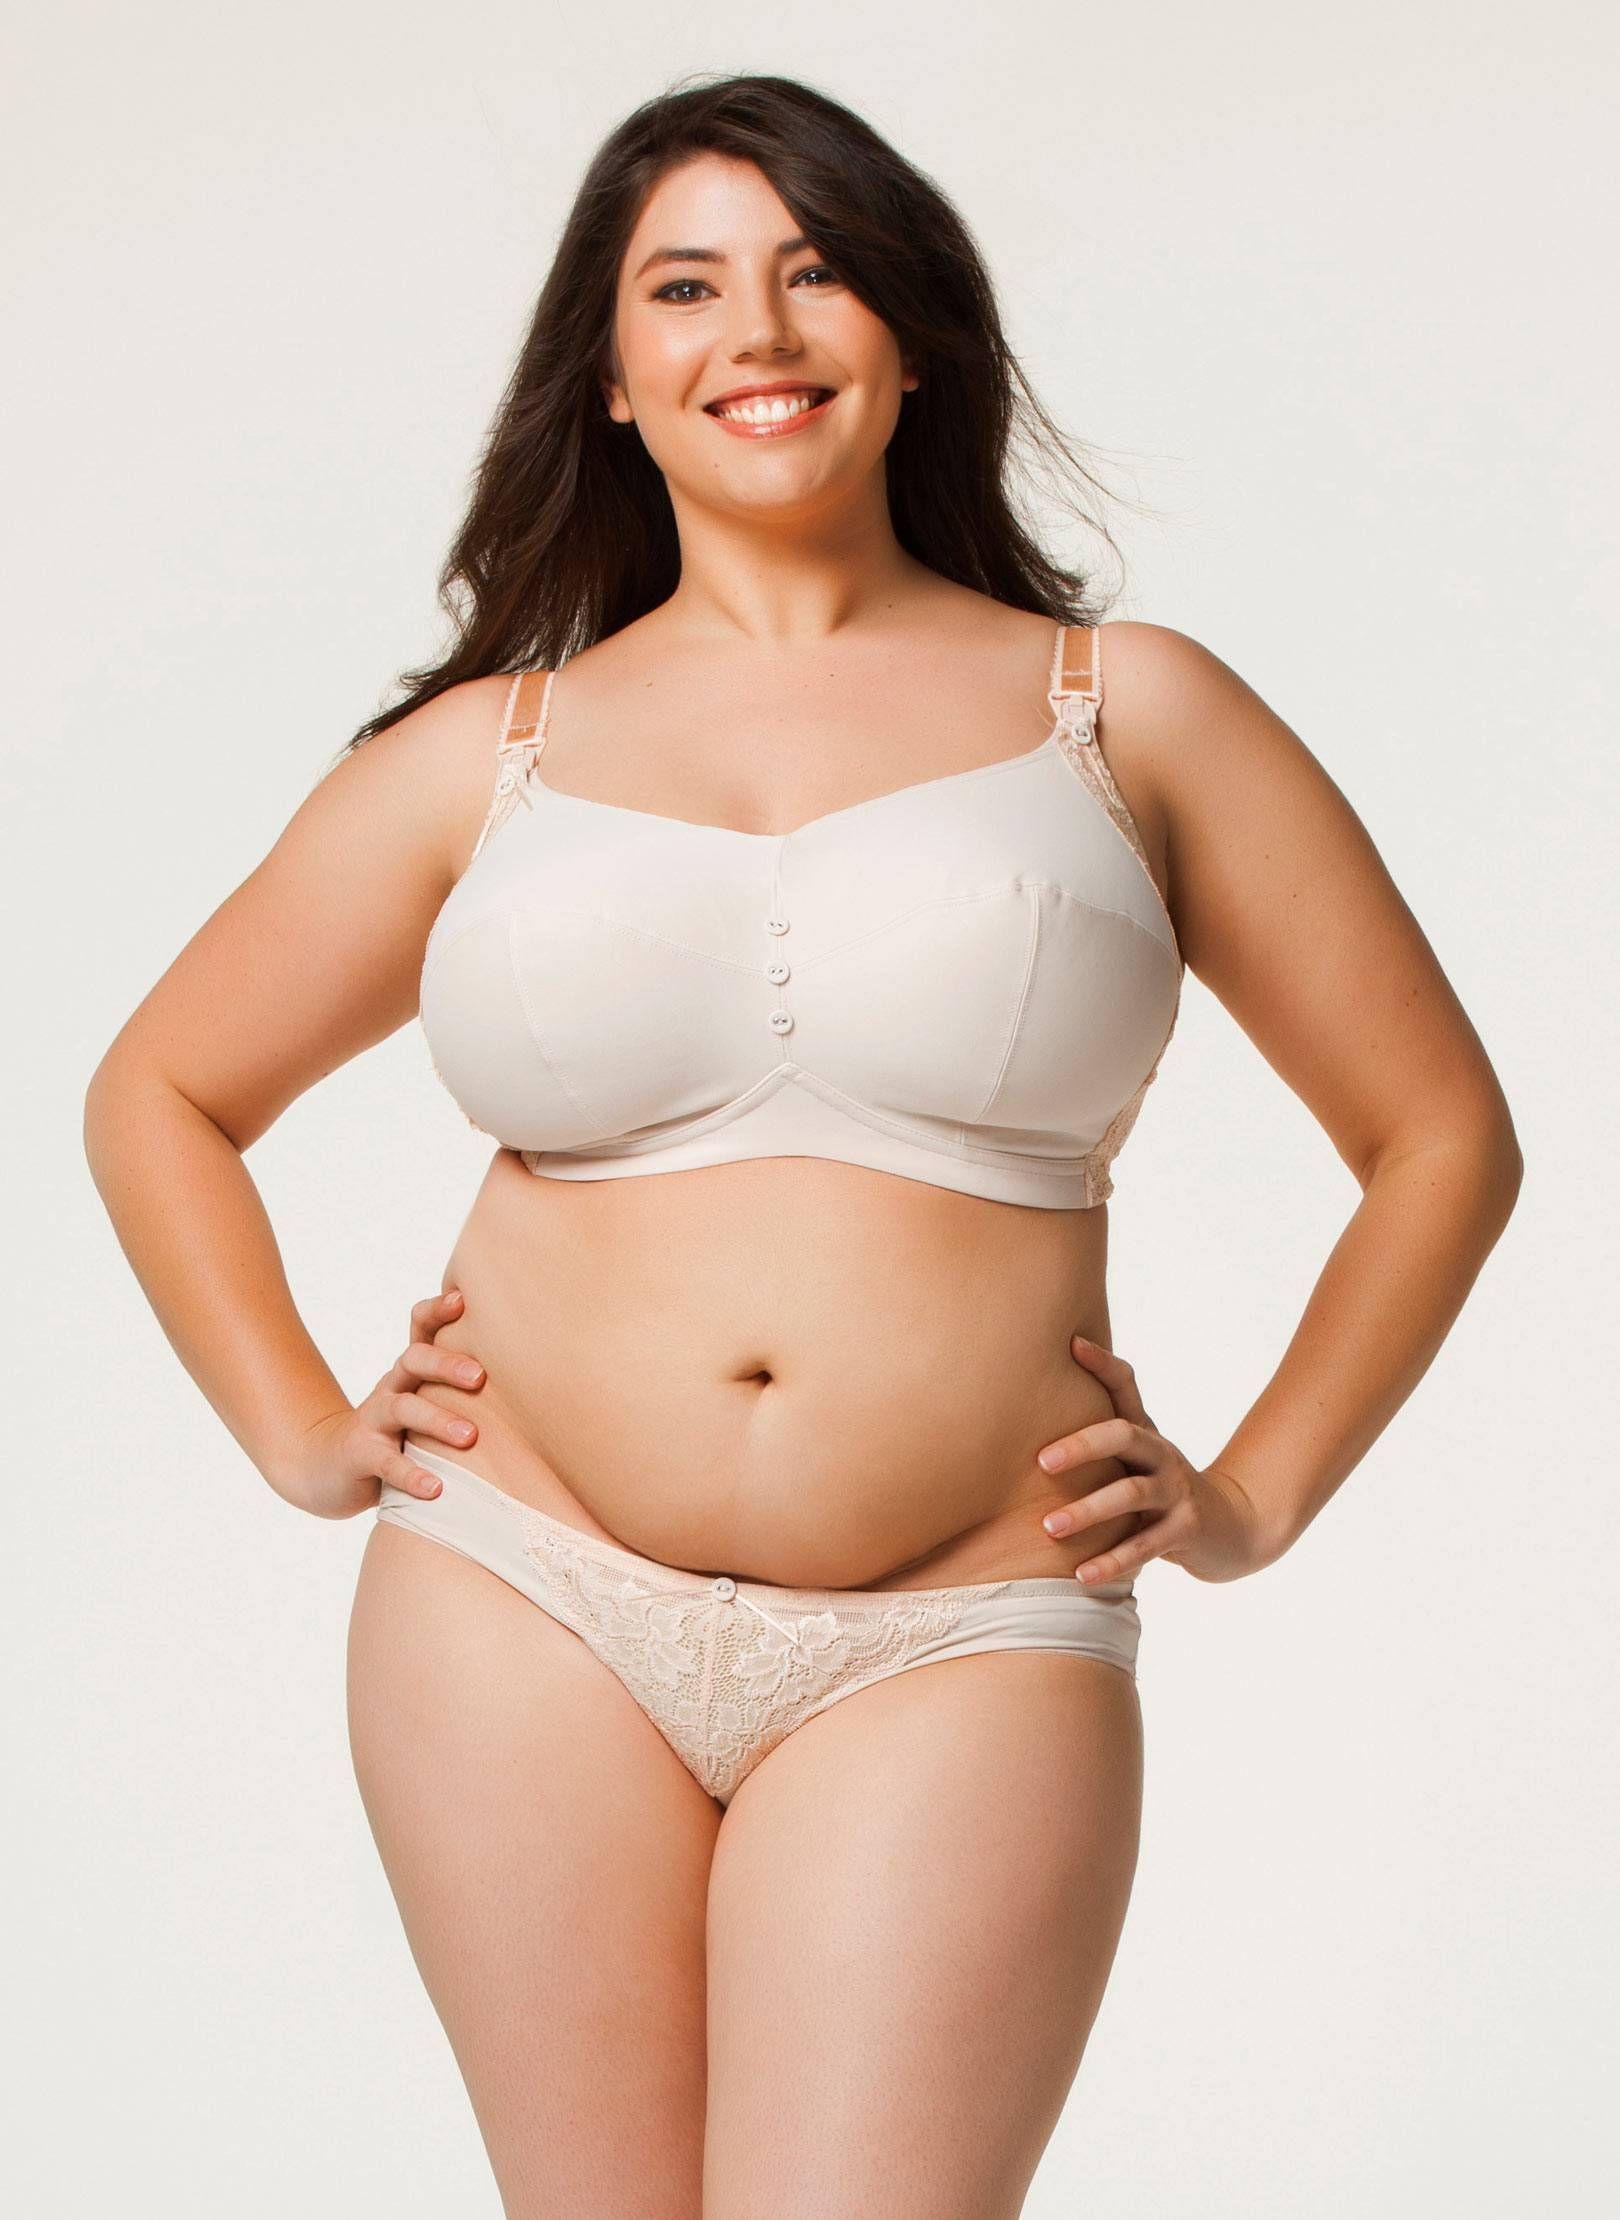 Plus Size Lingerie and Costumes for Curvy Women